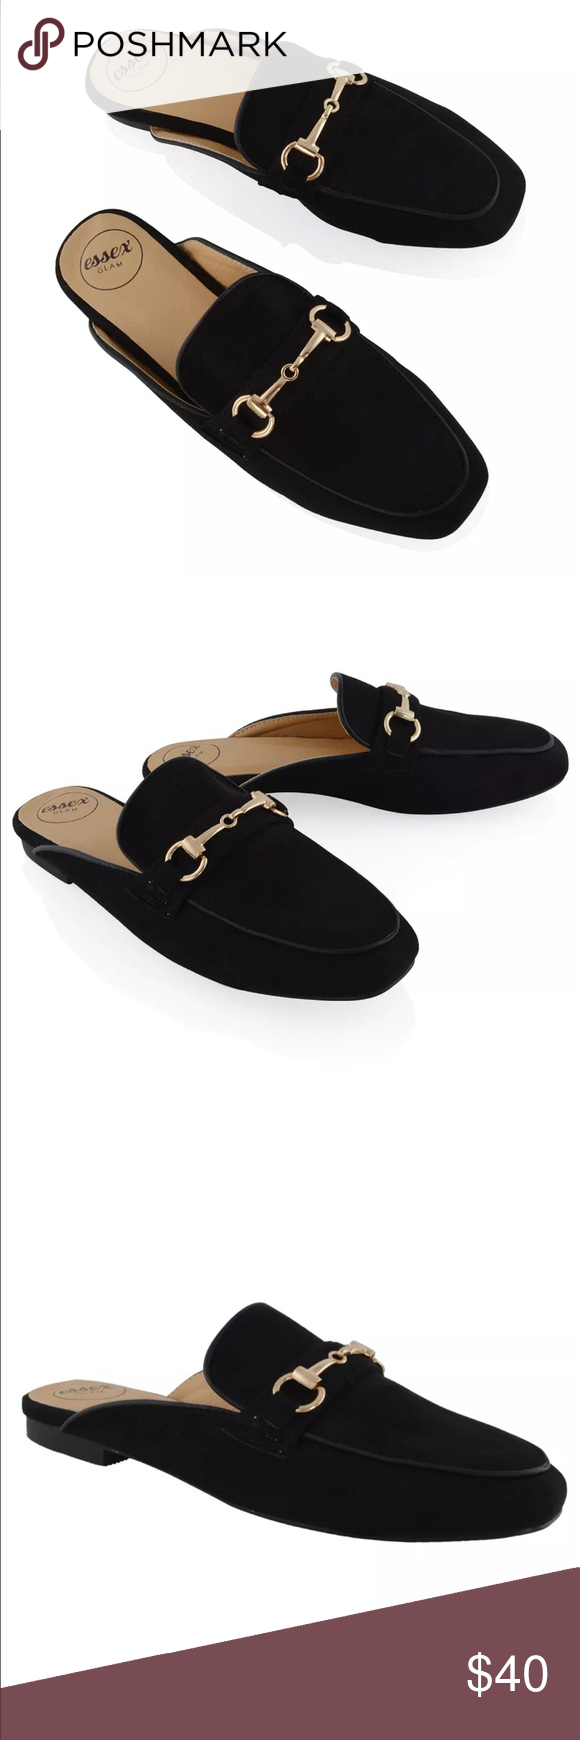 ea6bab334 faux suede gucci look alike loafers so cute never been worn! Zara Shoes  Flats & Loafers